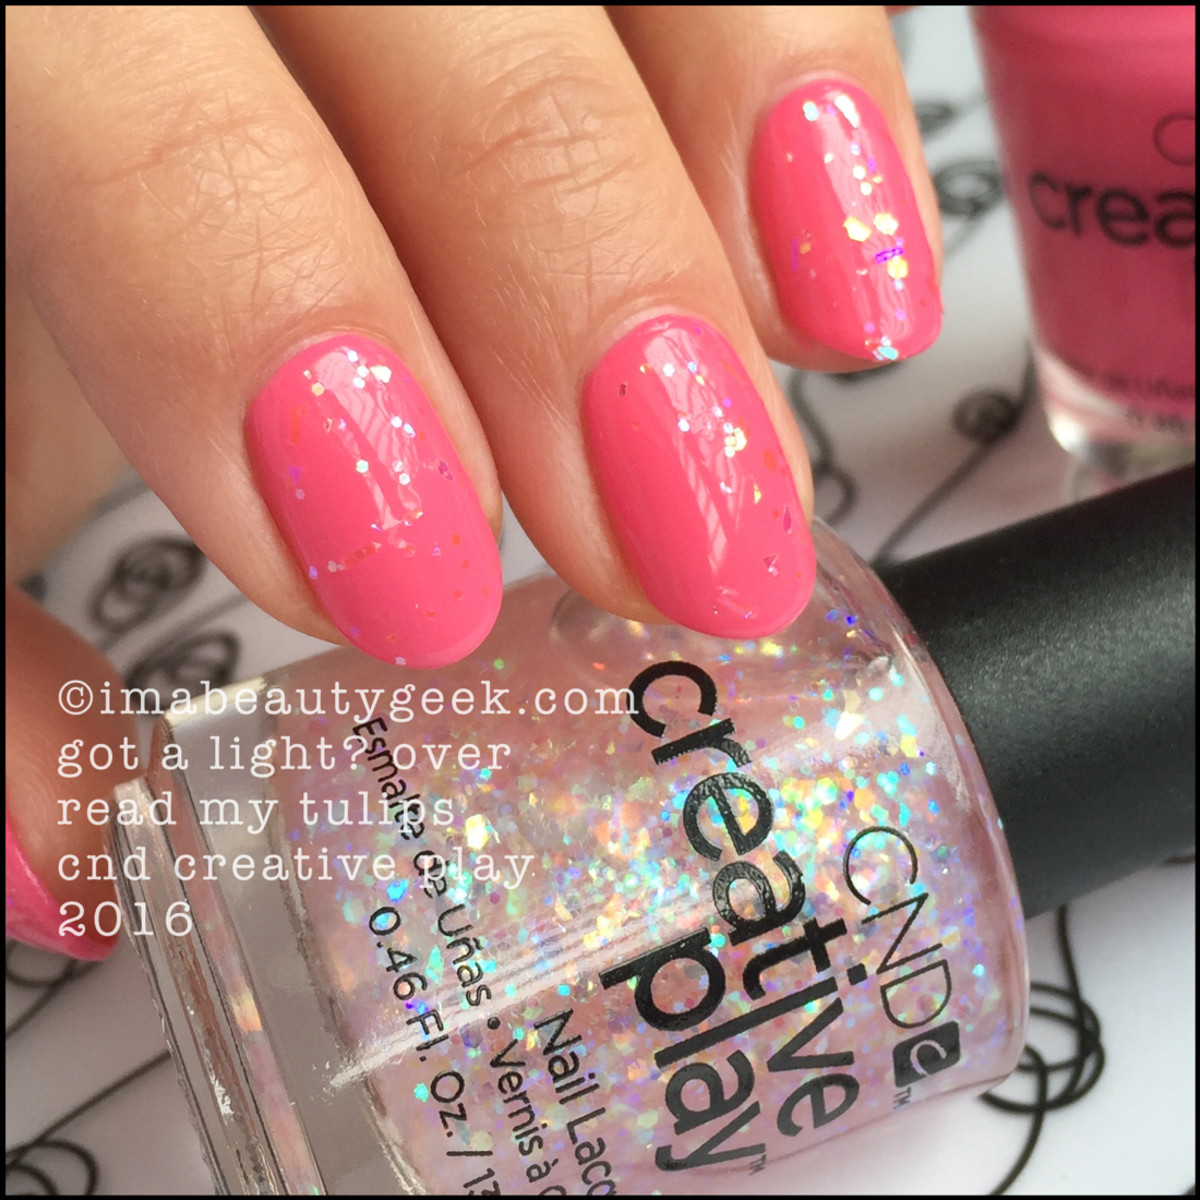 CND Creative Play Got a Light over Read My Tulips_CND Creative Play Nail Polish Swatches